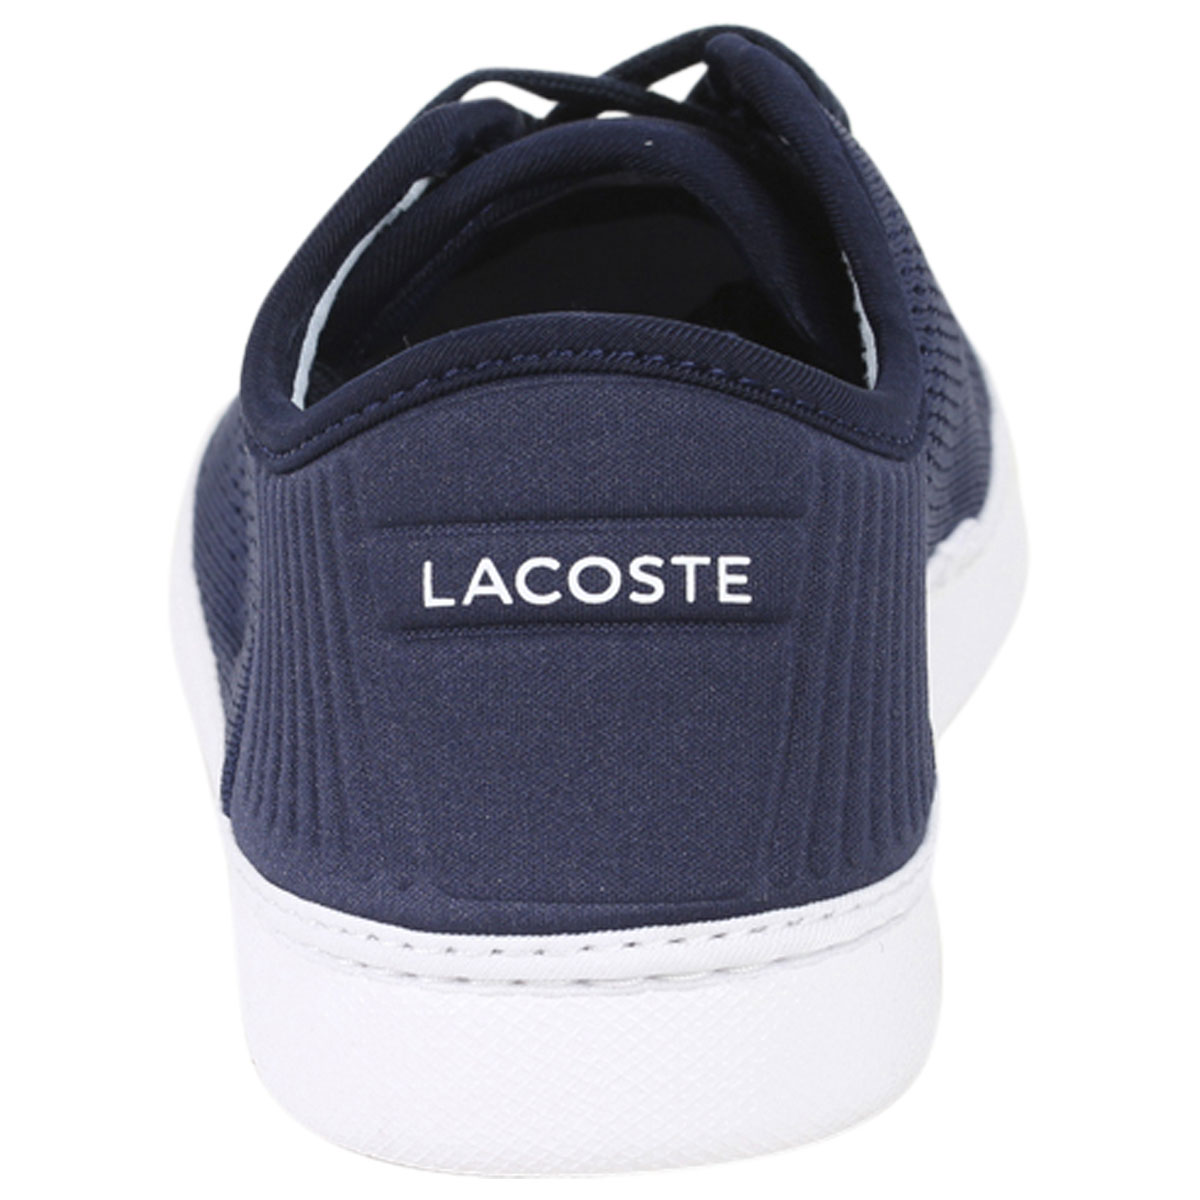 Lacoste-Men-039-s-L-Ydro-Lace-118-Trainers-Sneakers-Shoes thumbnail 10